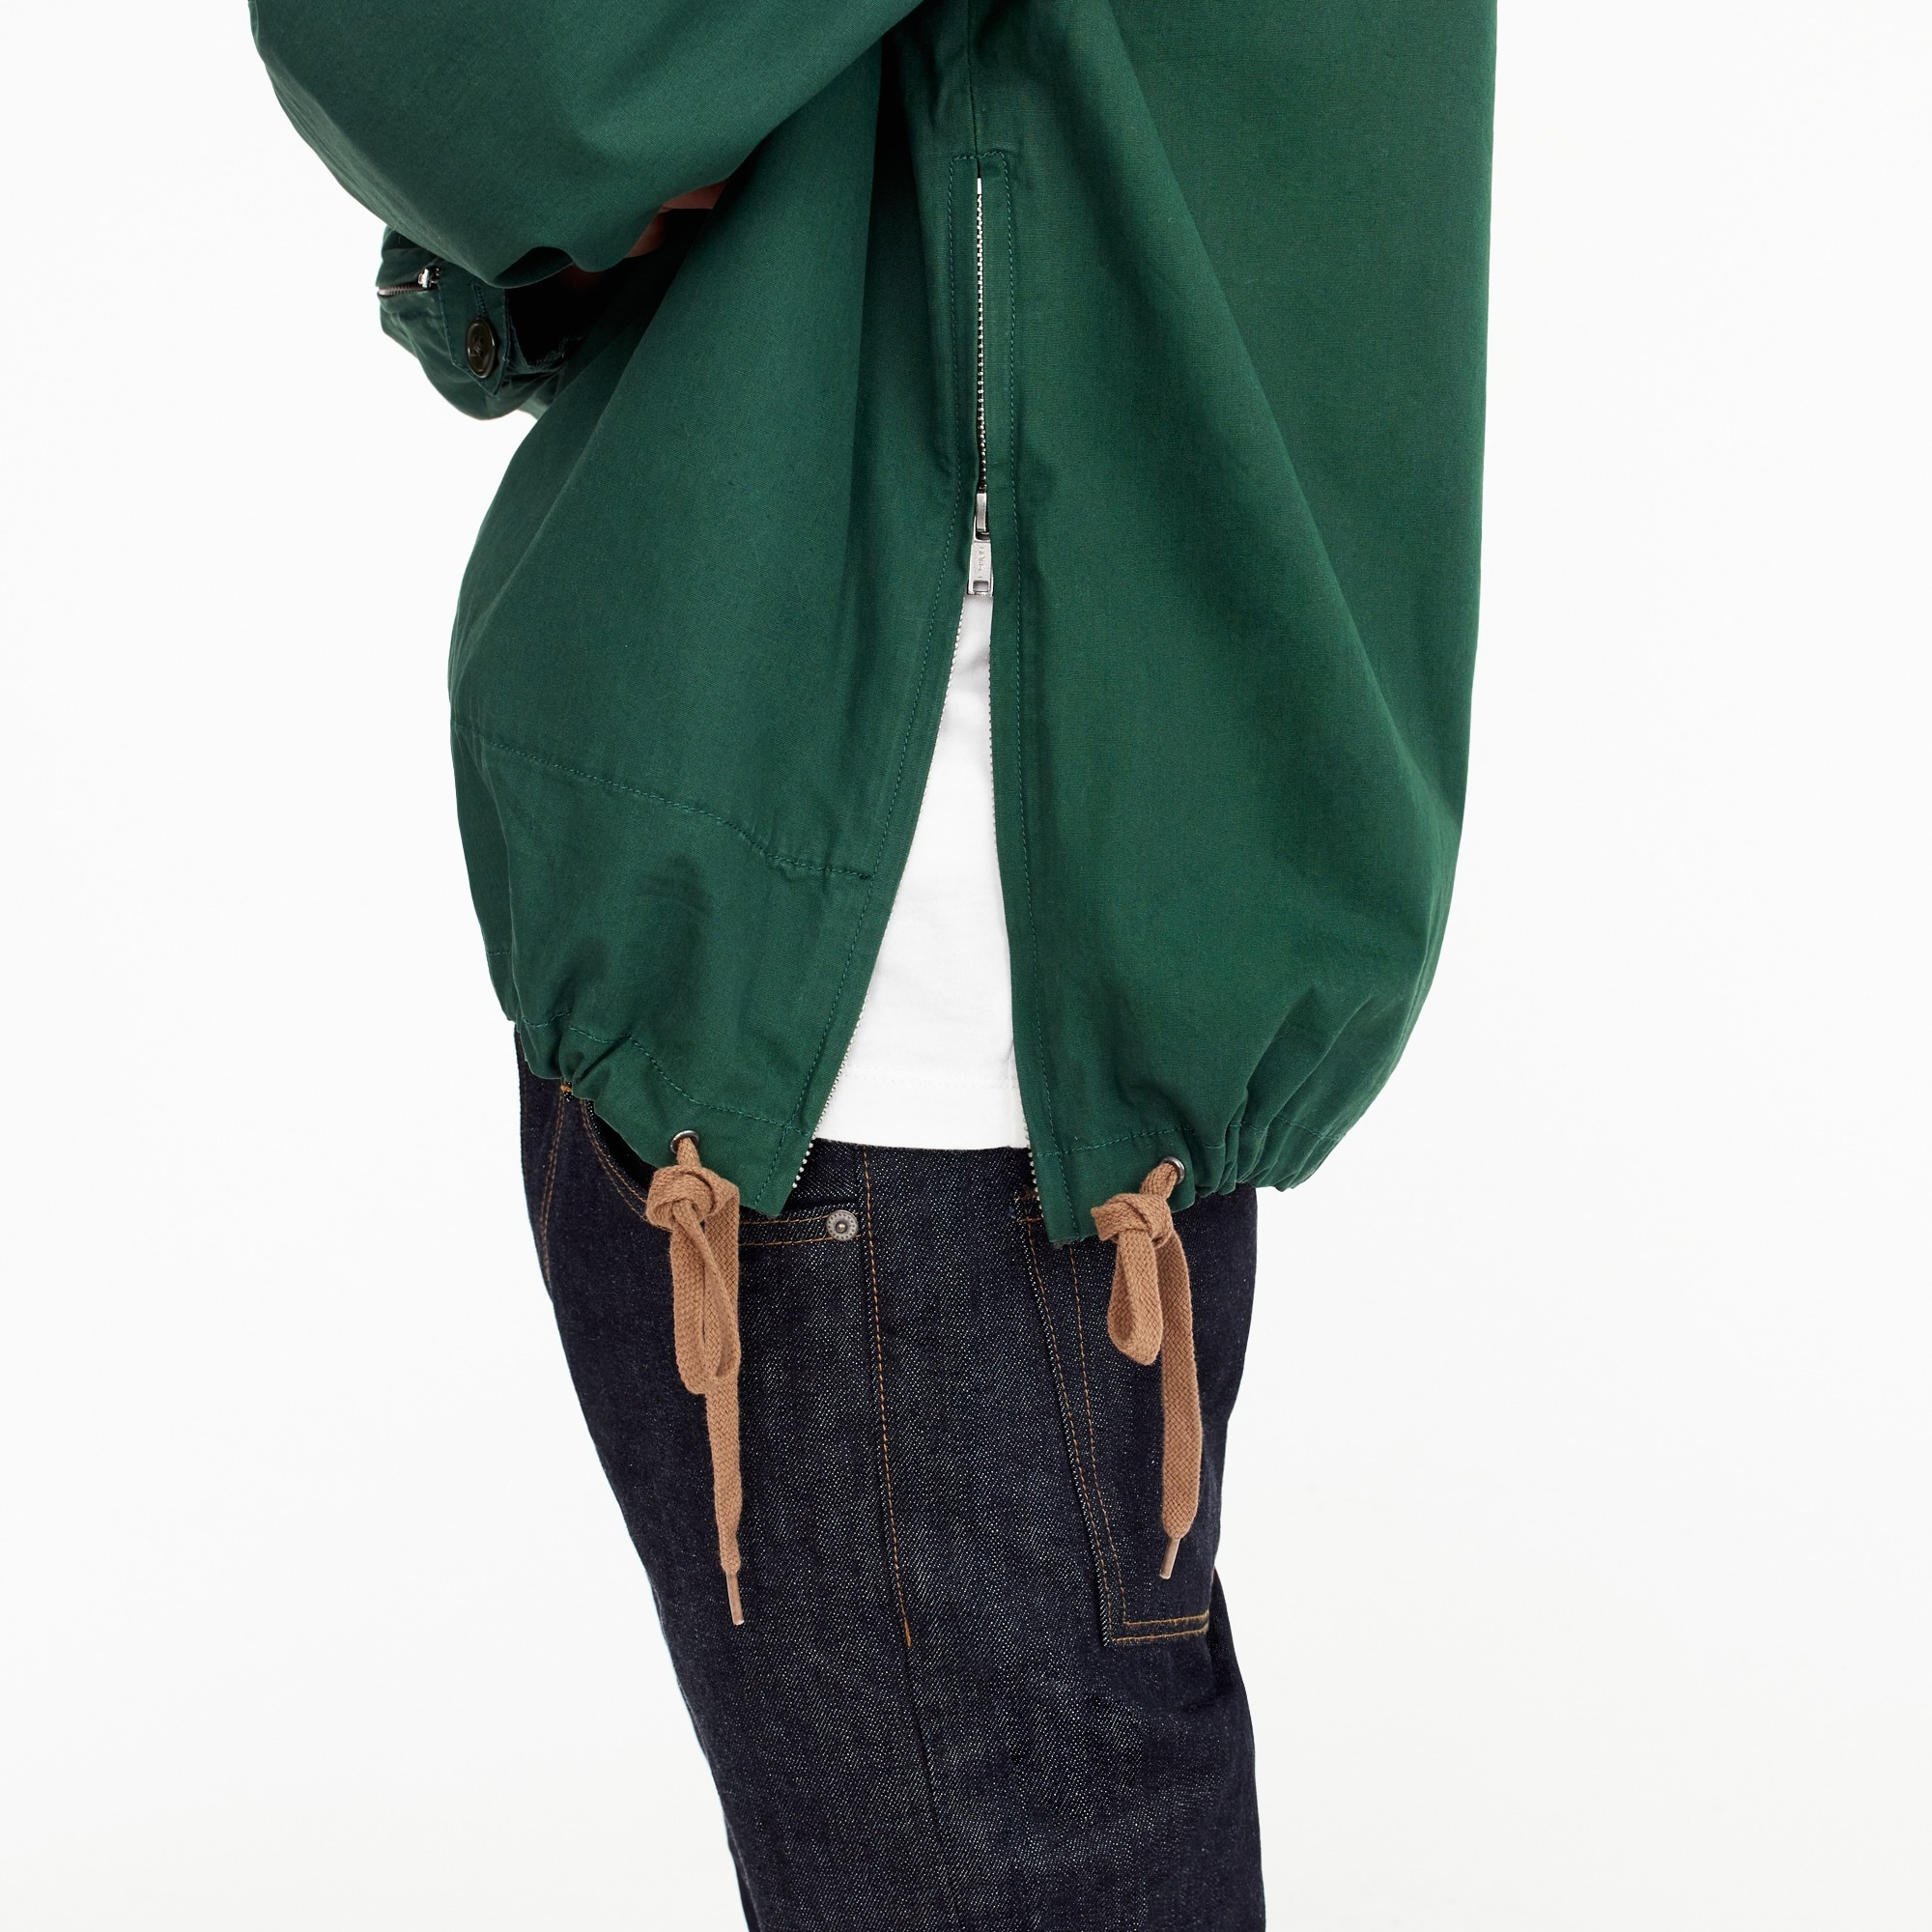 Image 3 for Unisex 1989 side-zip cotton anorak